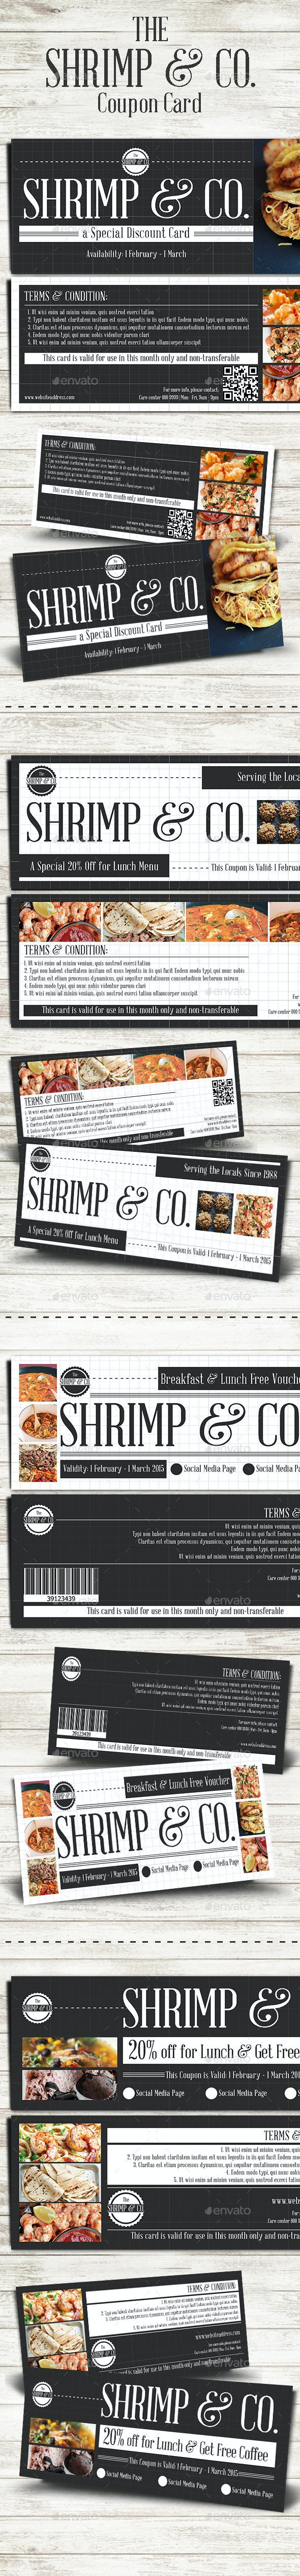 Seafood Cafe Coupon Card - Loyalty Cards Cards & Invites